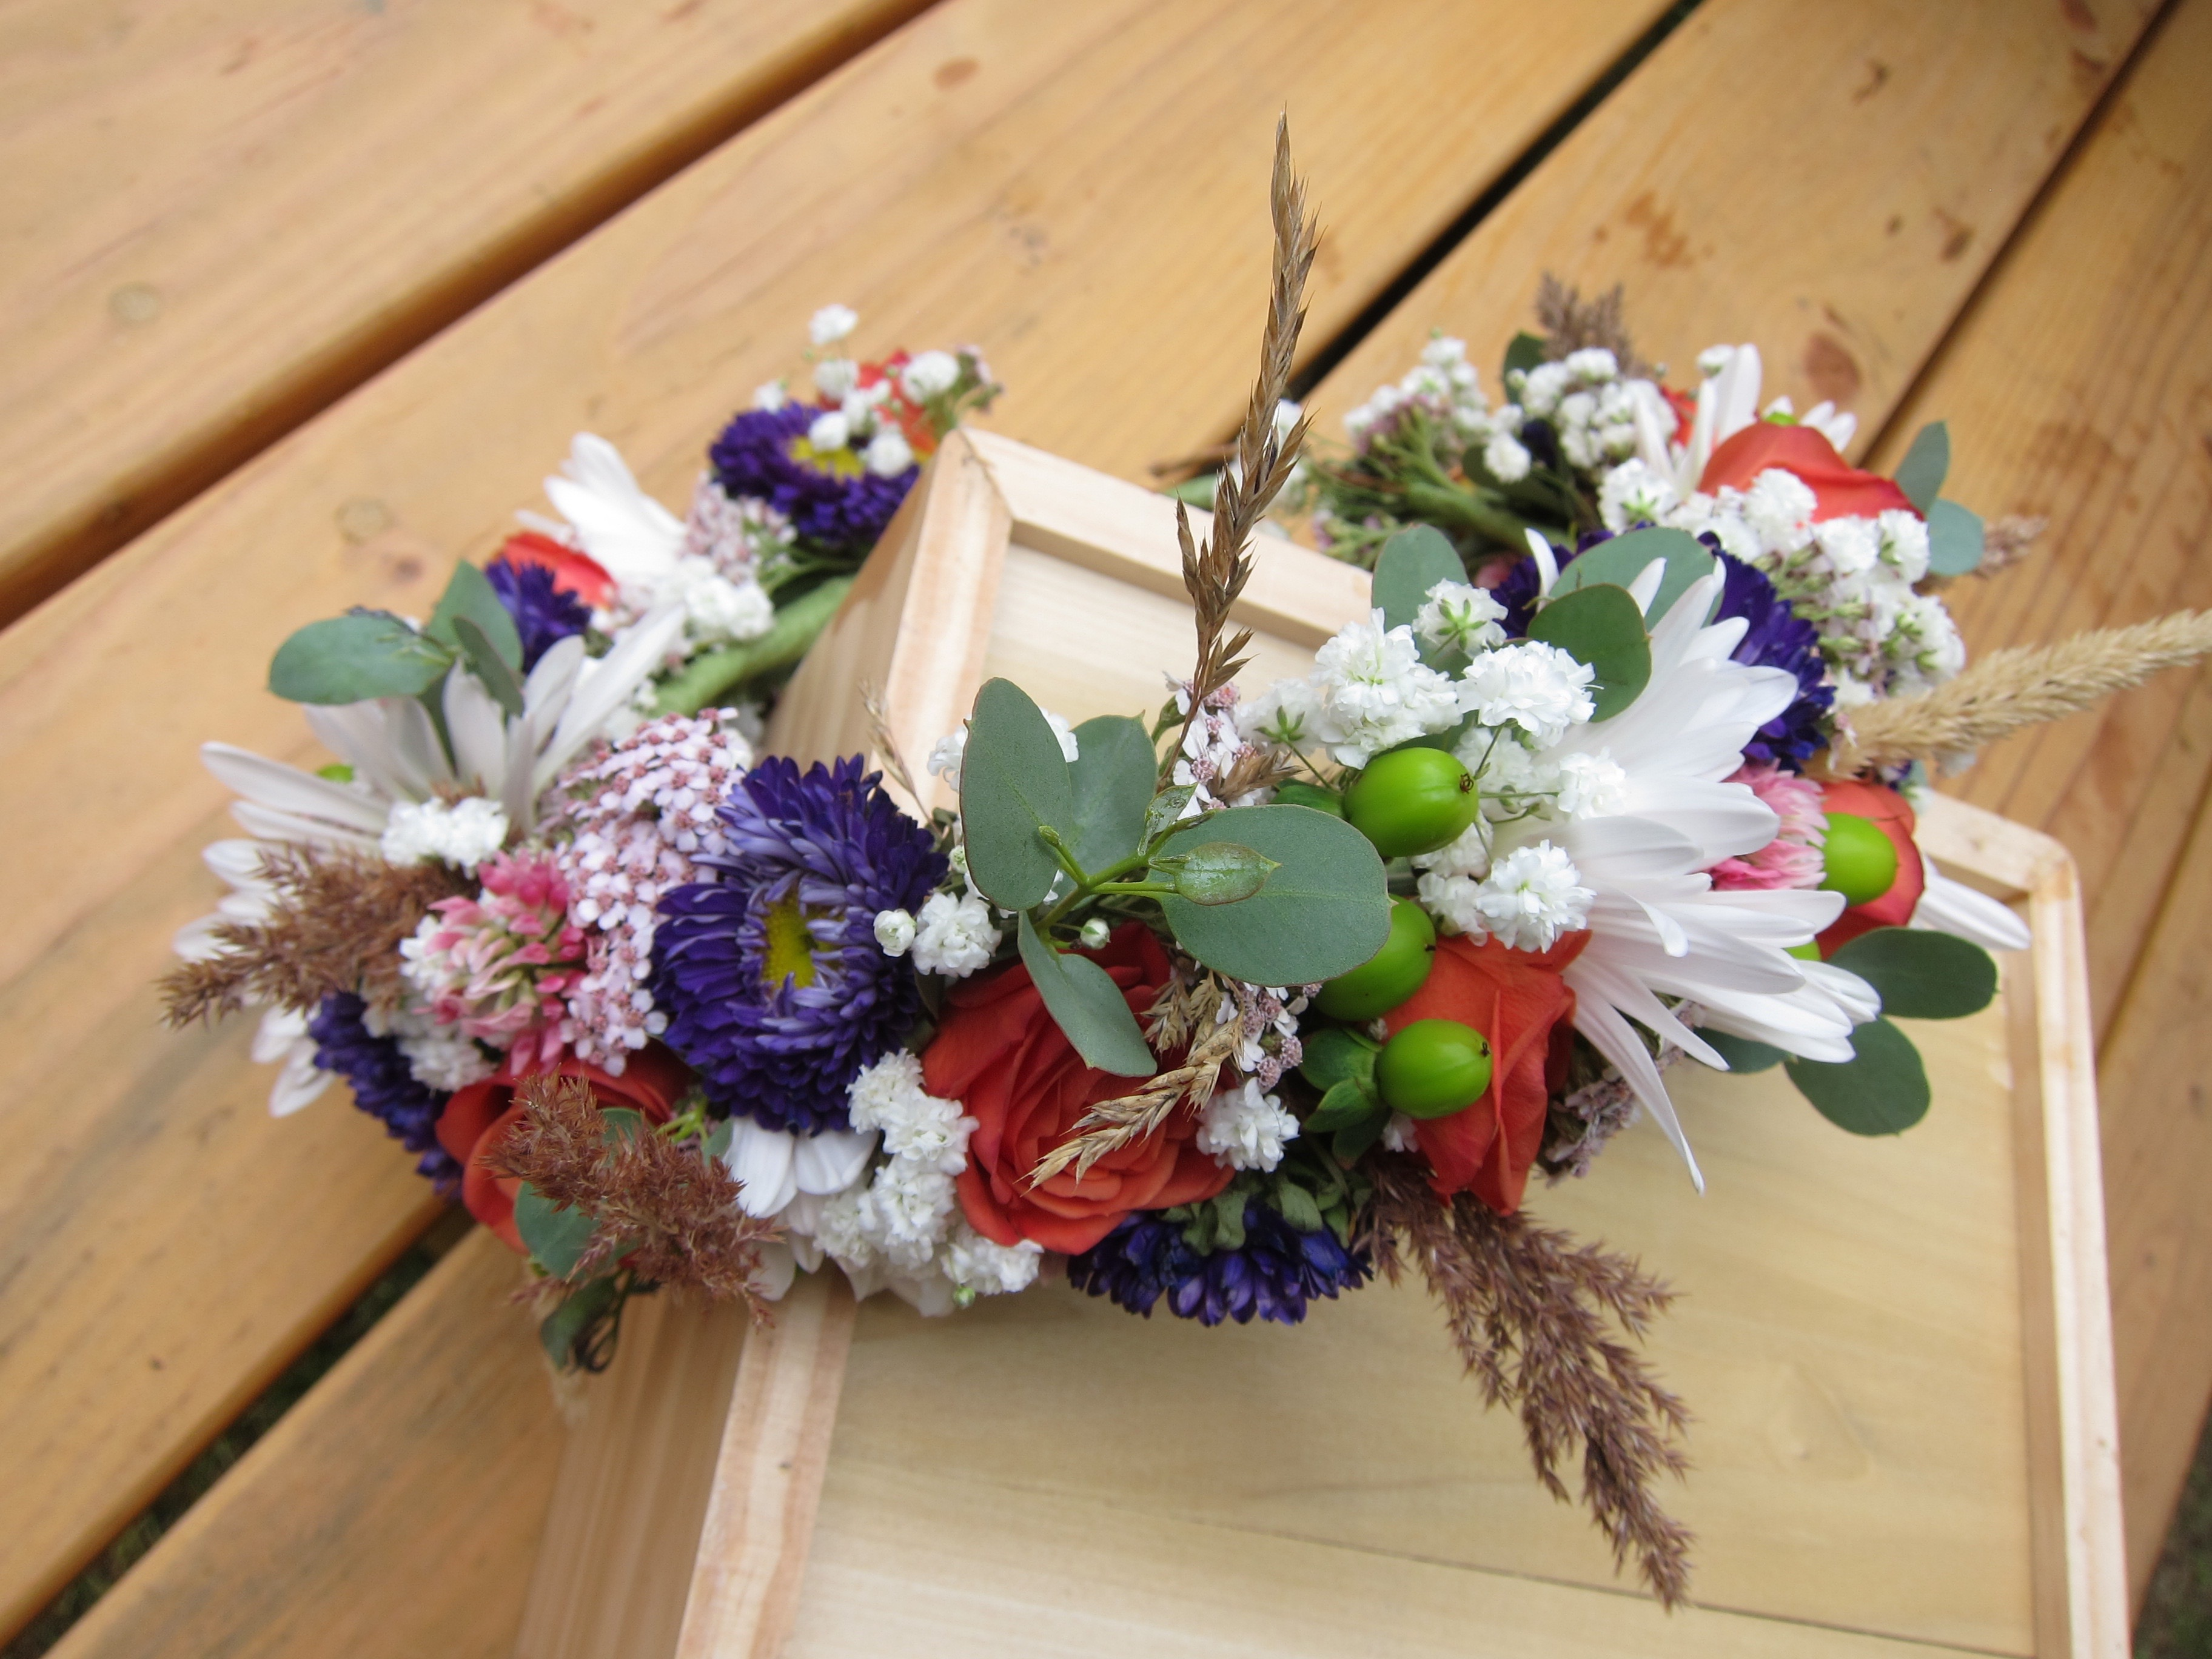 Flower crown made with purple Japanese asters and Alaska wildflowers   designed by Natasha Price of Paper Peony